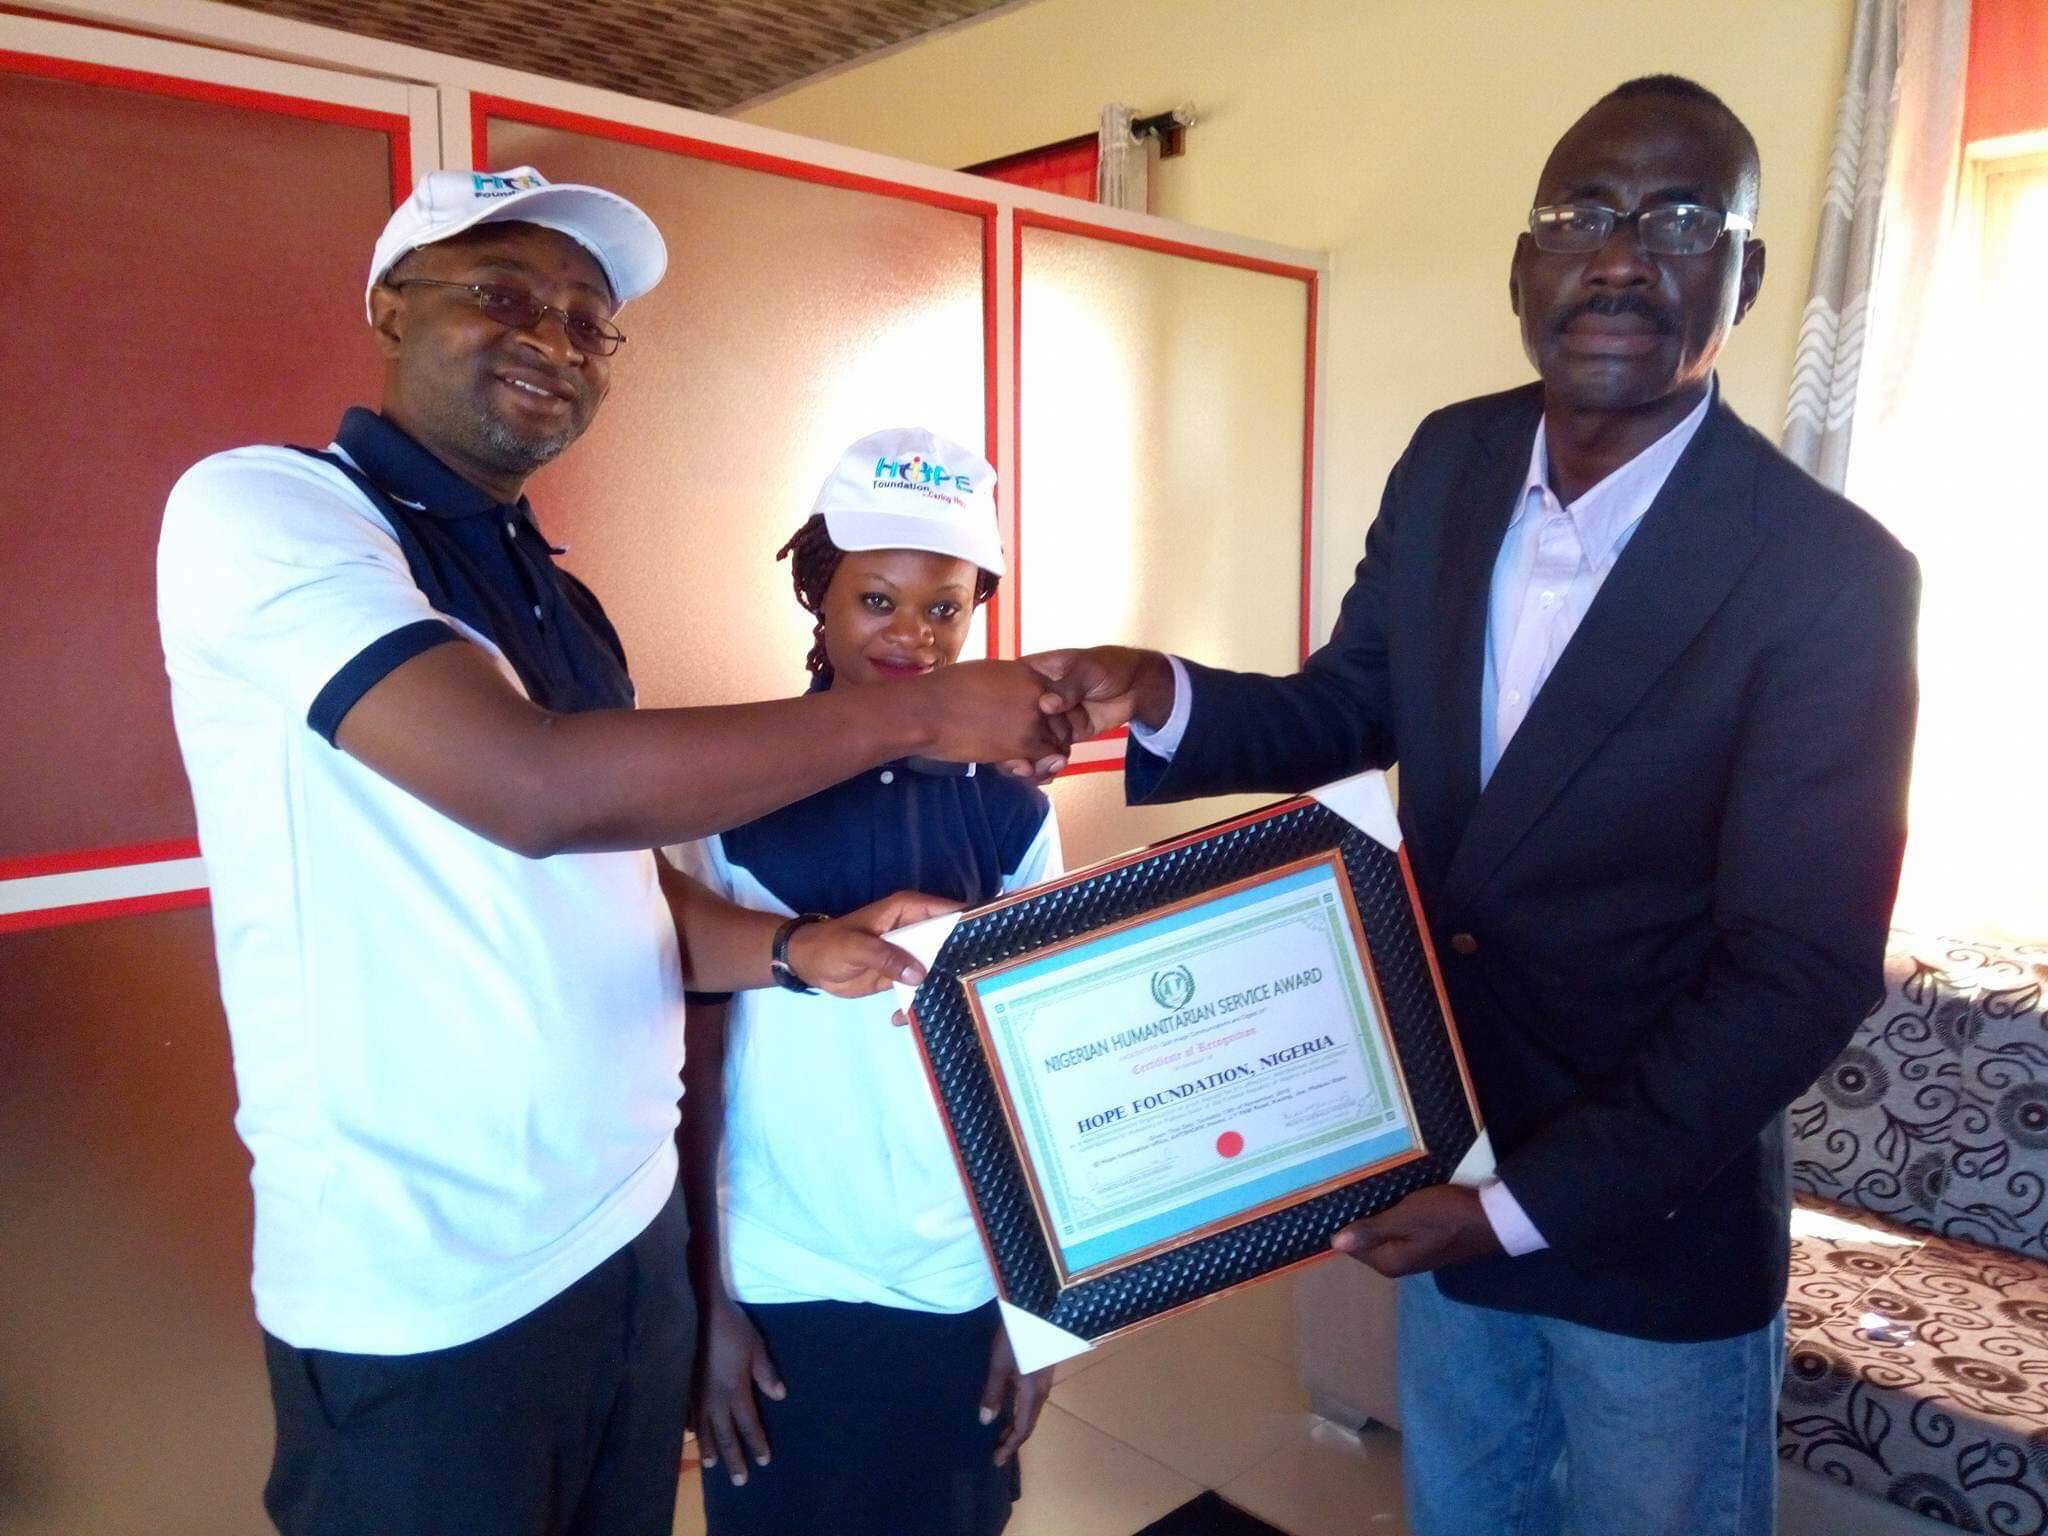 HFG Receives Humanitarian Service Award From Gold Image Communication (Photos)